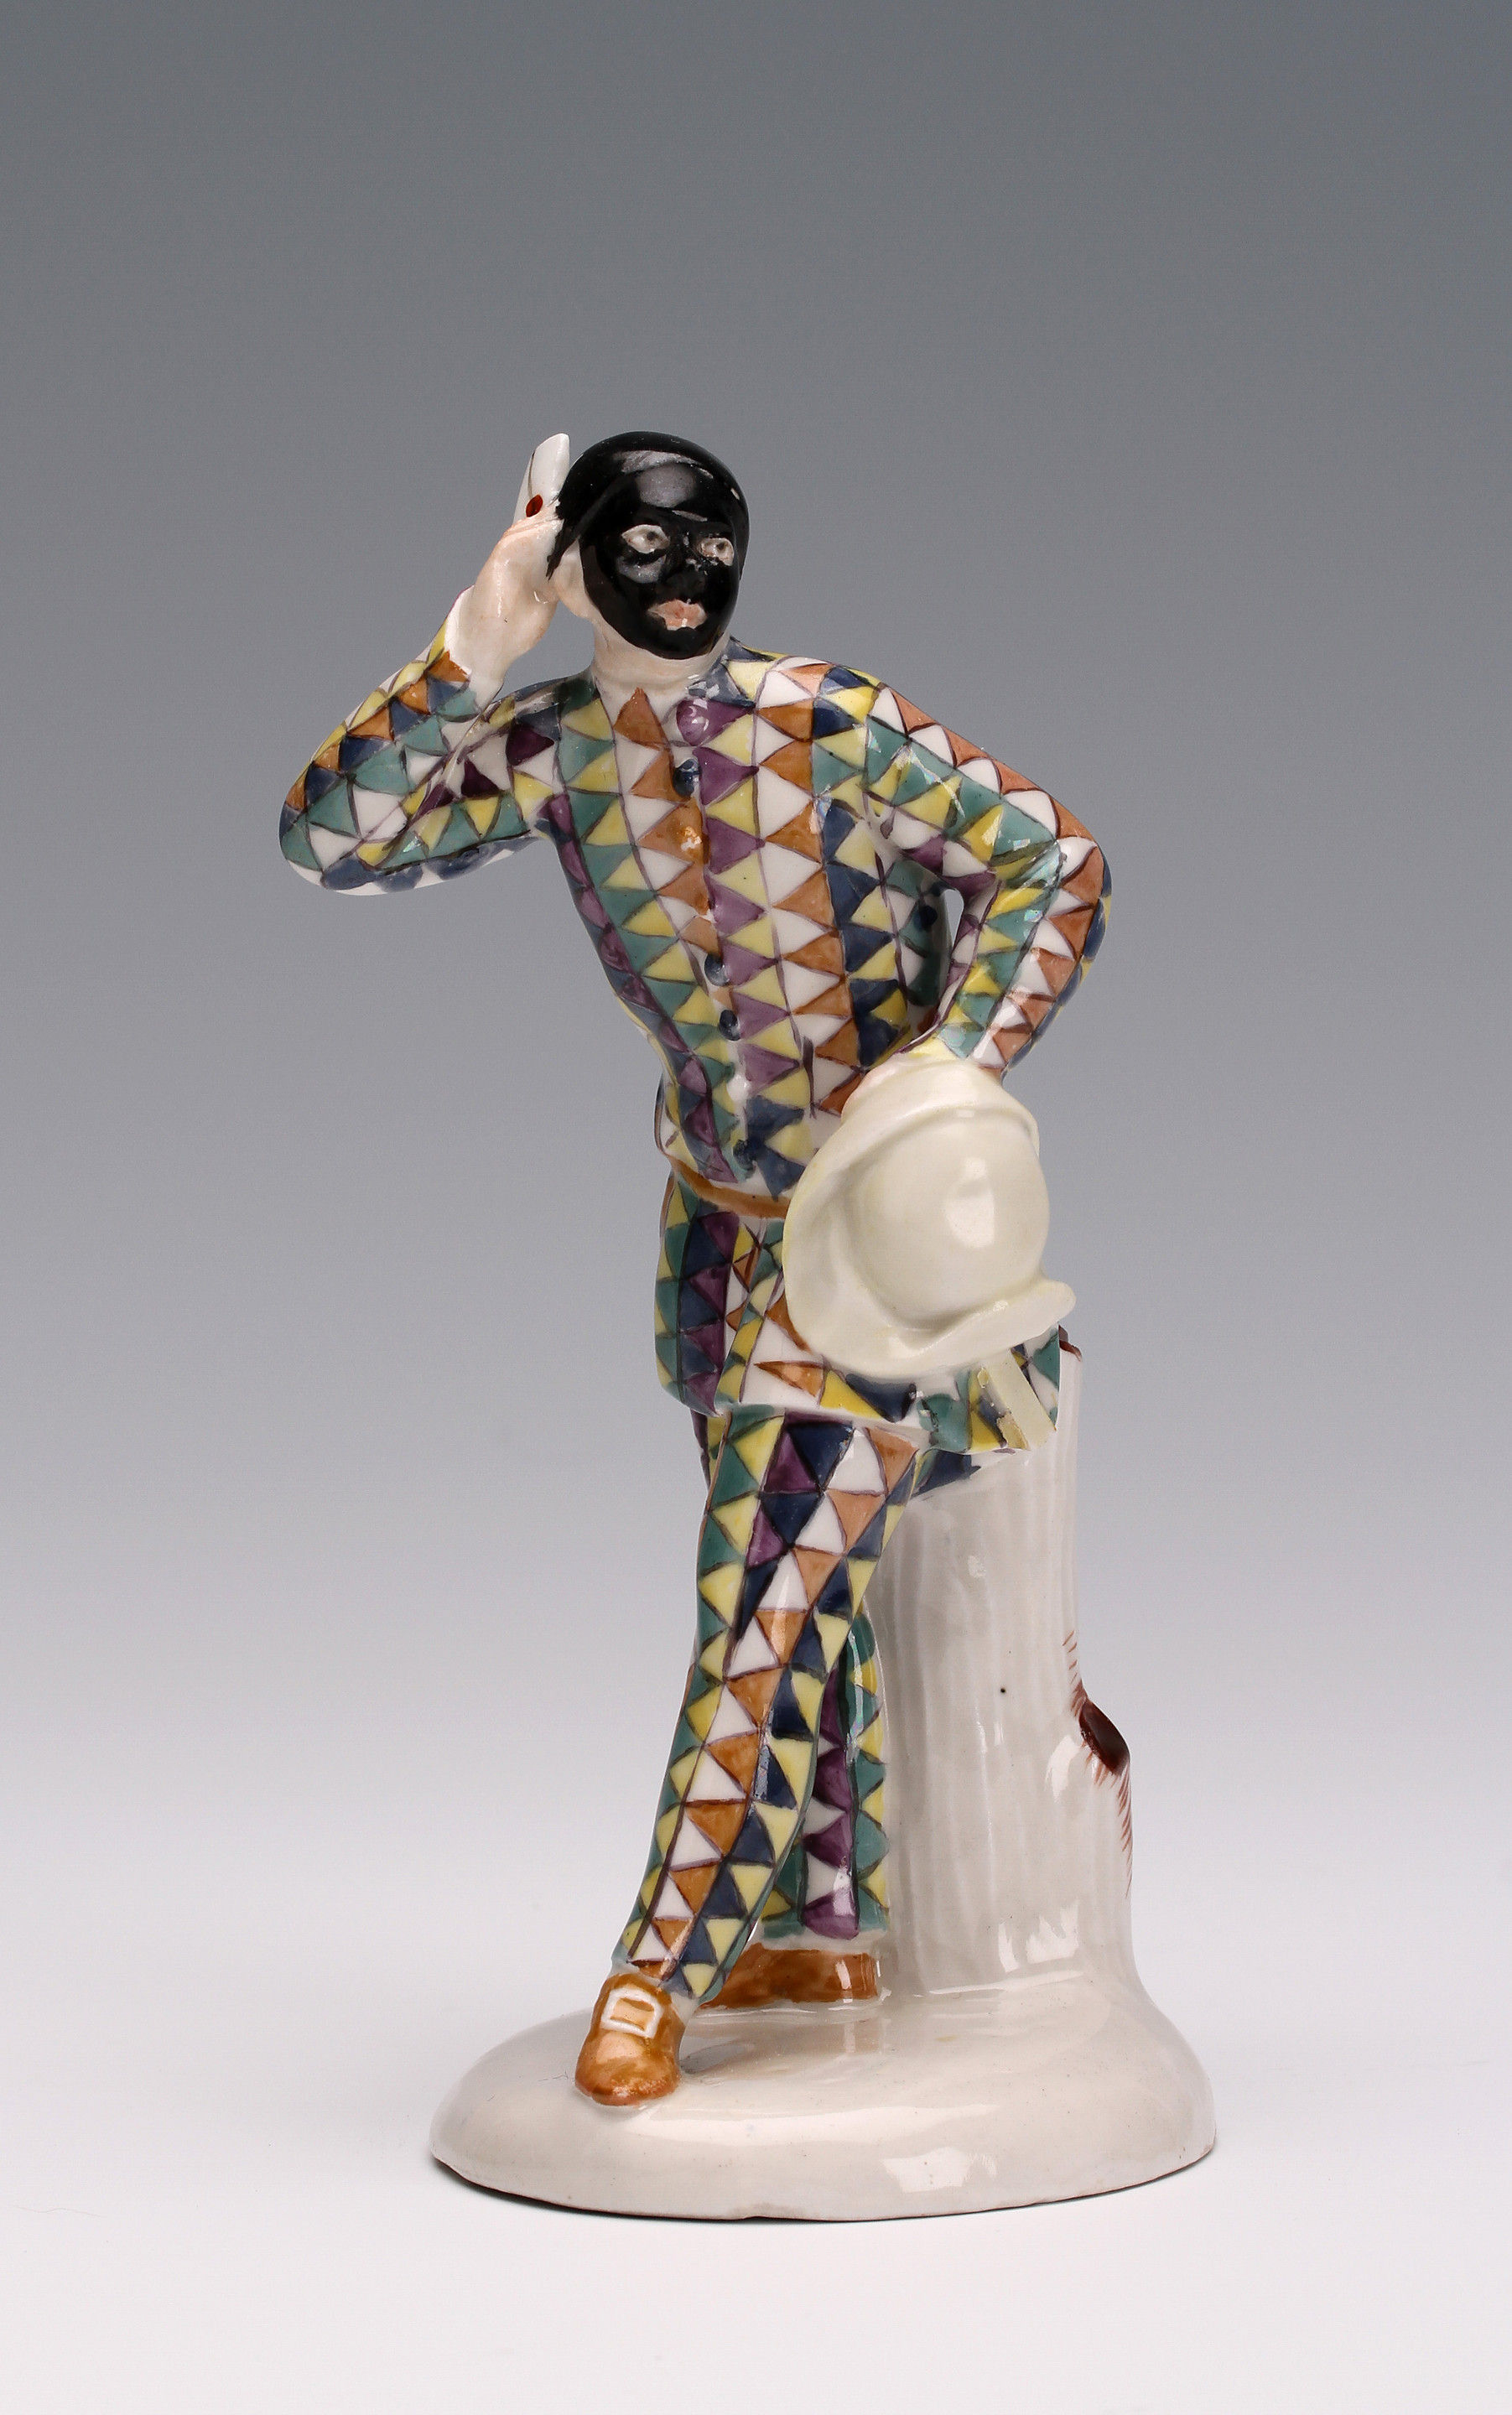 A Closter Veilsdorf figure of Harlequin modelled by Wenzel Neu